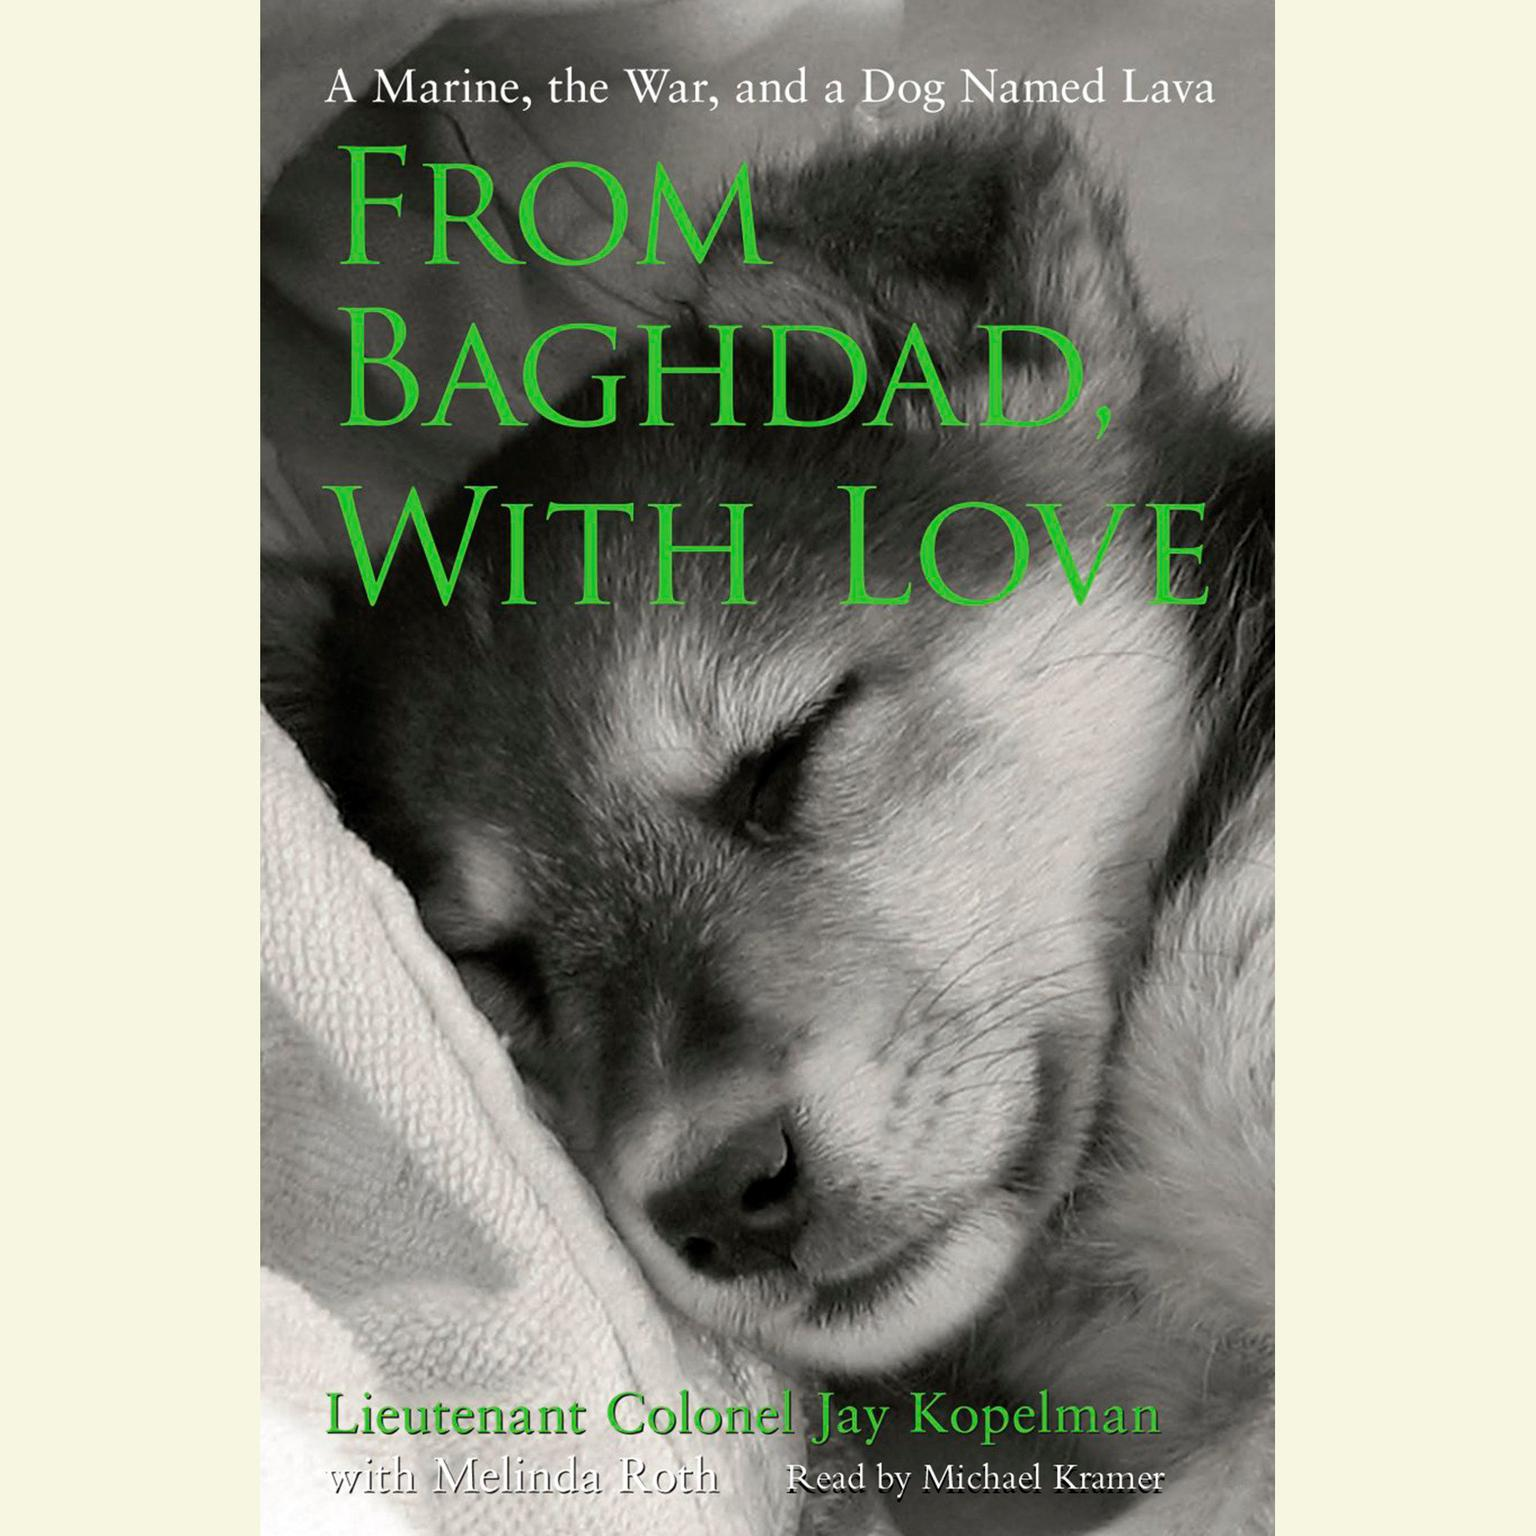 From Baghdad, With Love: A Marine, the War, and a Dog Named Lava Audiobook, by Jay Kopelman